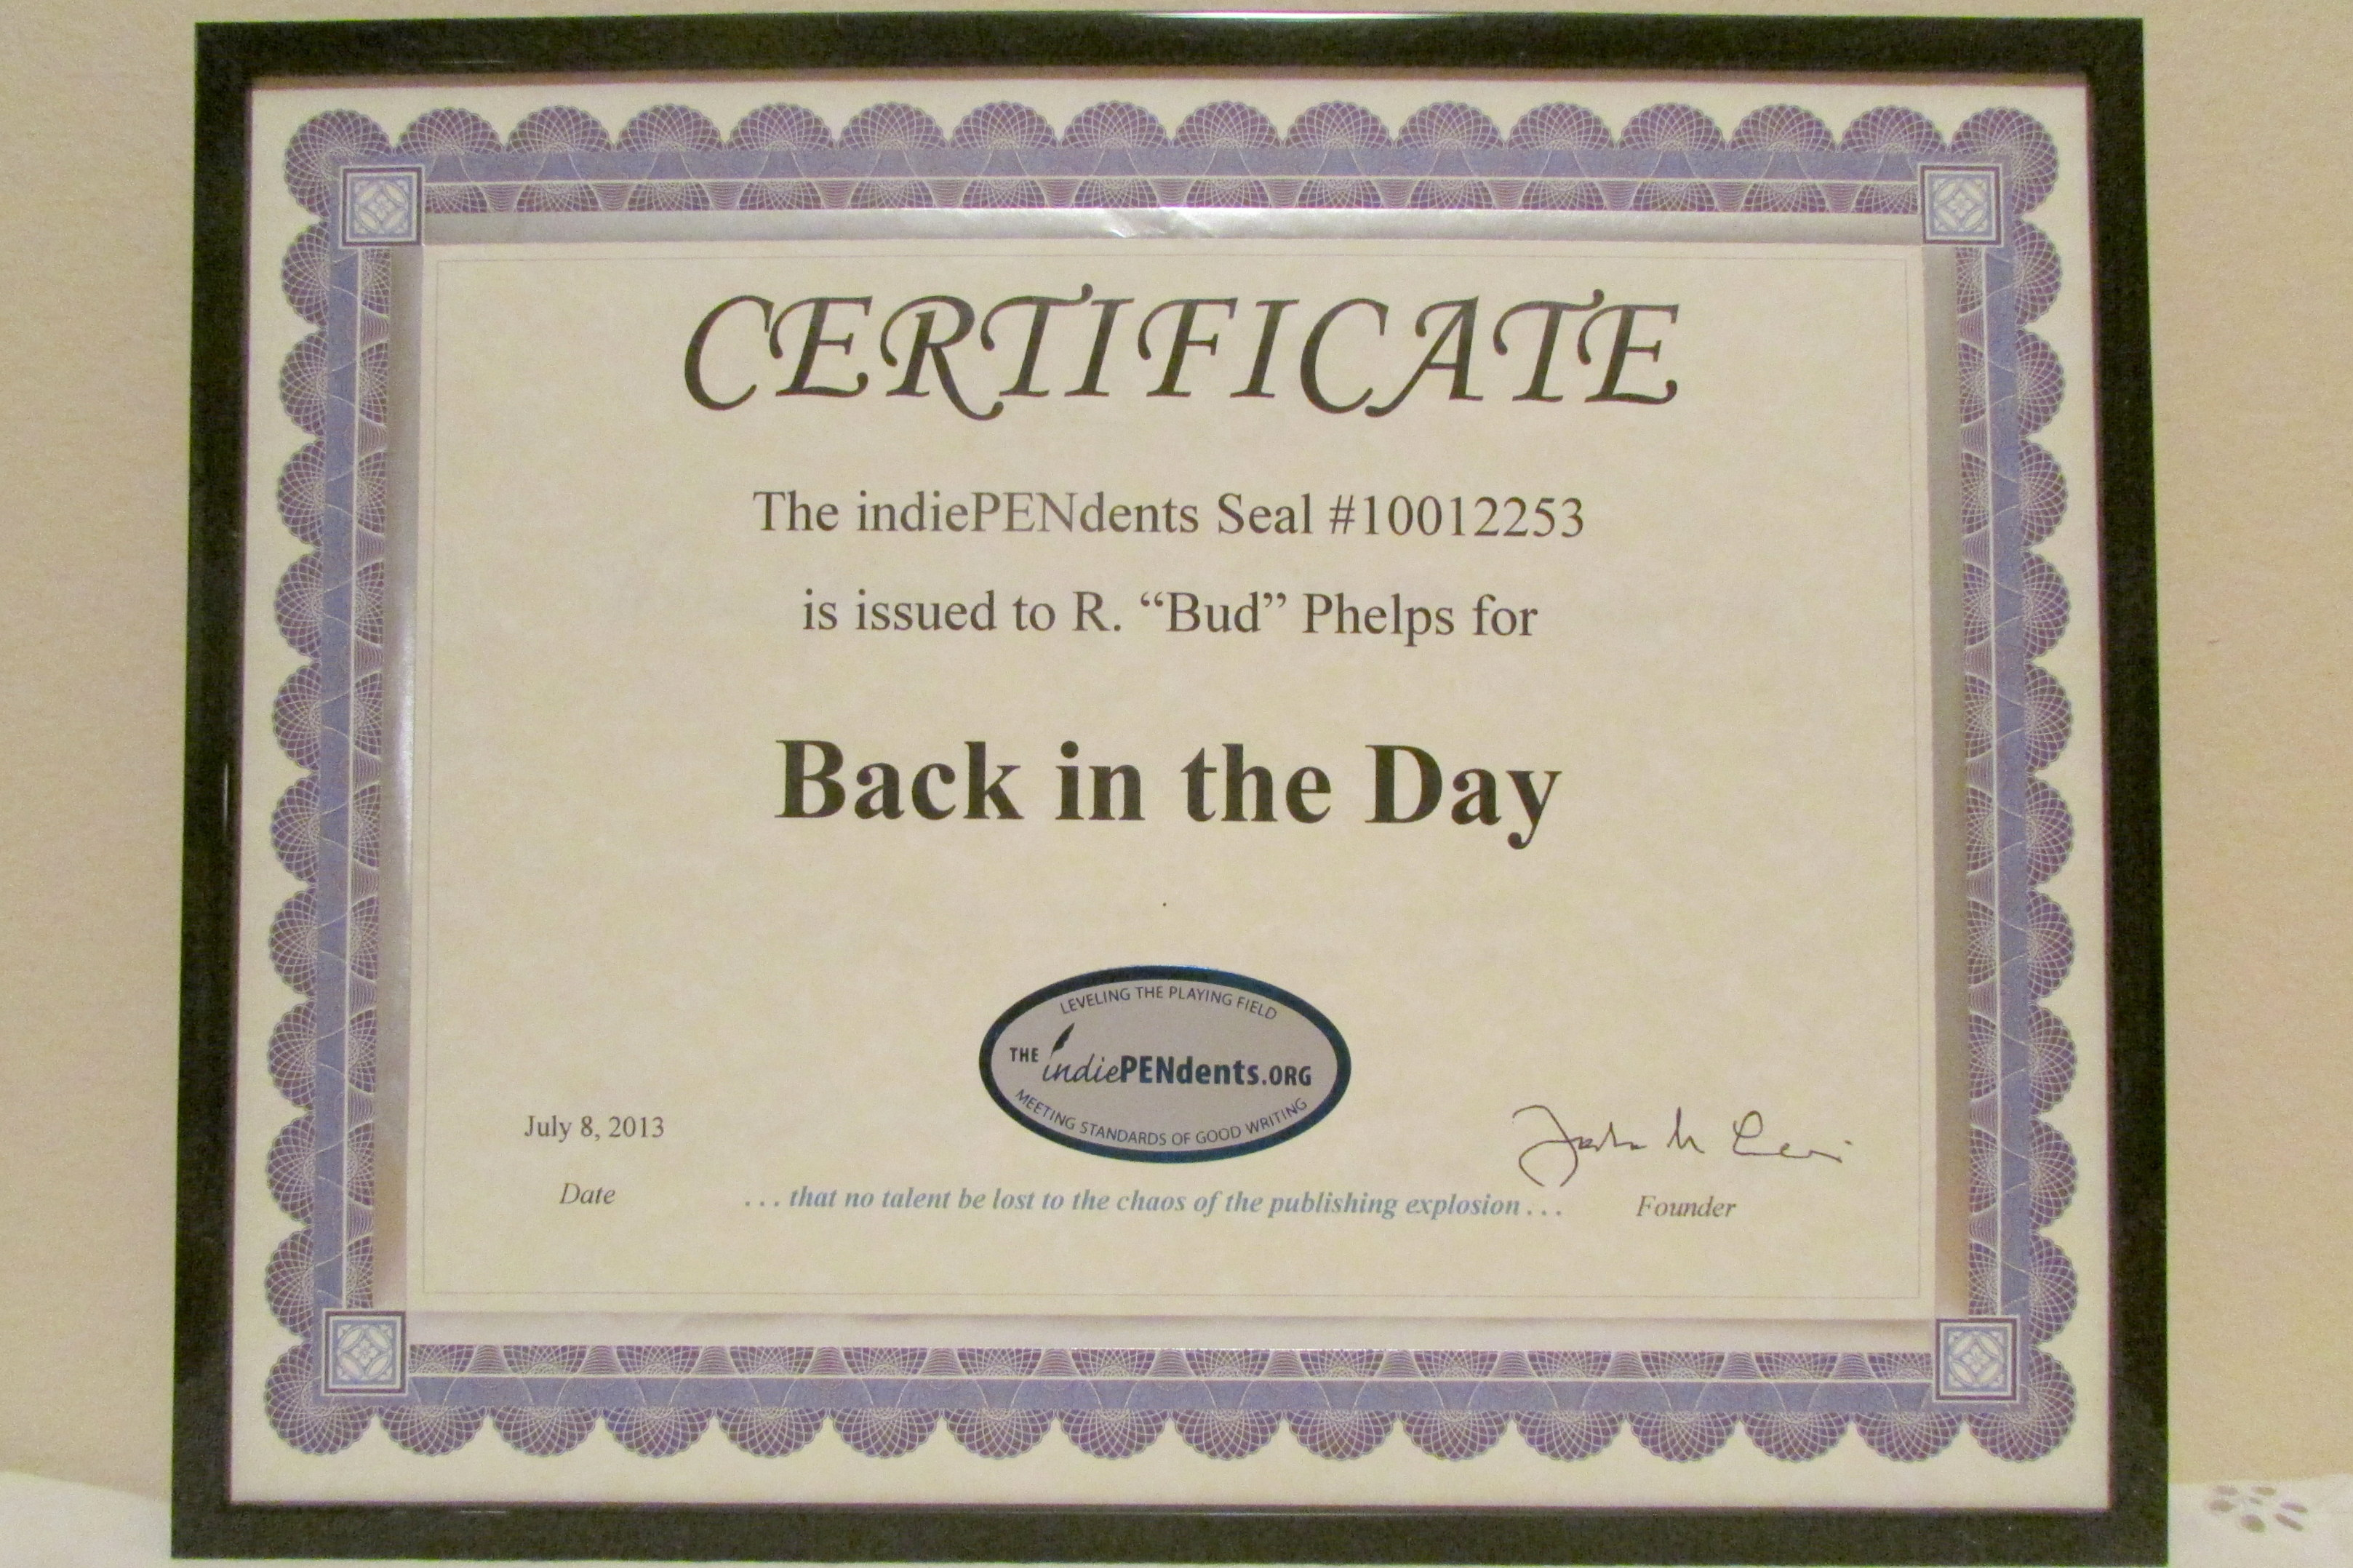 The indiependents certificate was awarded for back in the day the indiependents certificate shown here is the official seal 10012253 xflitez Choice Image